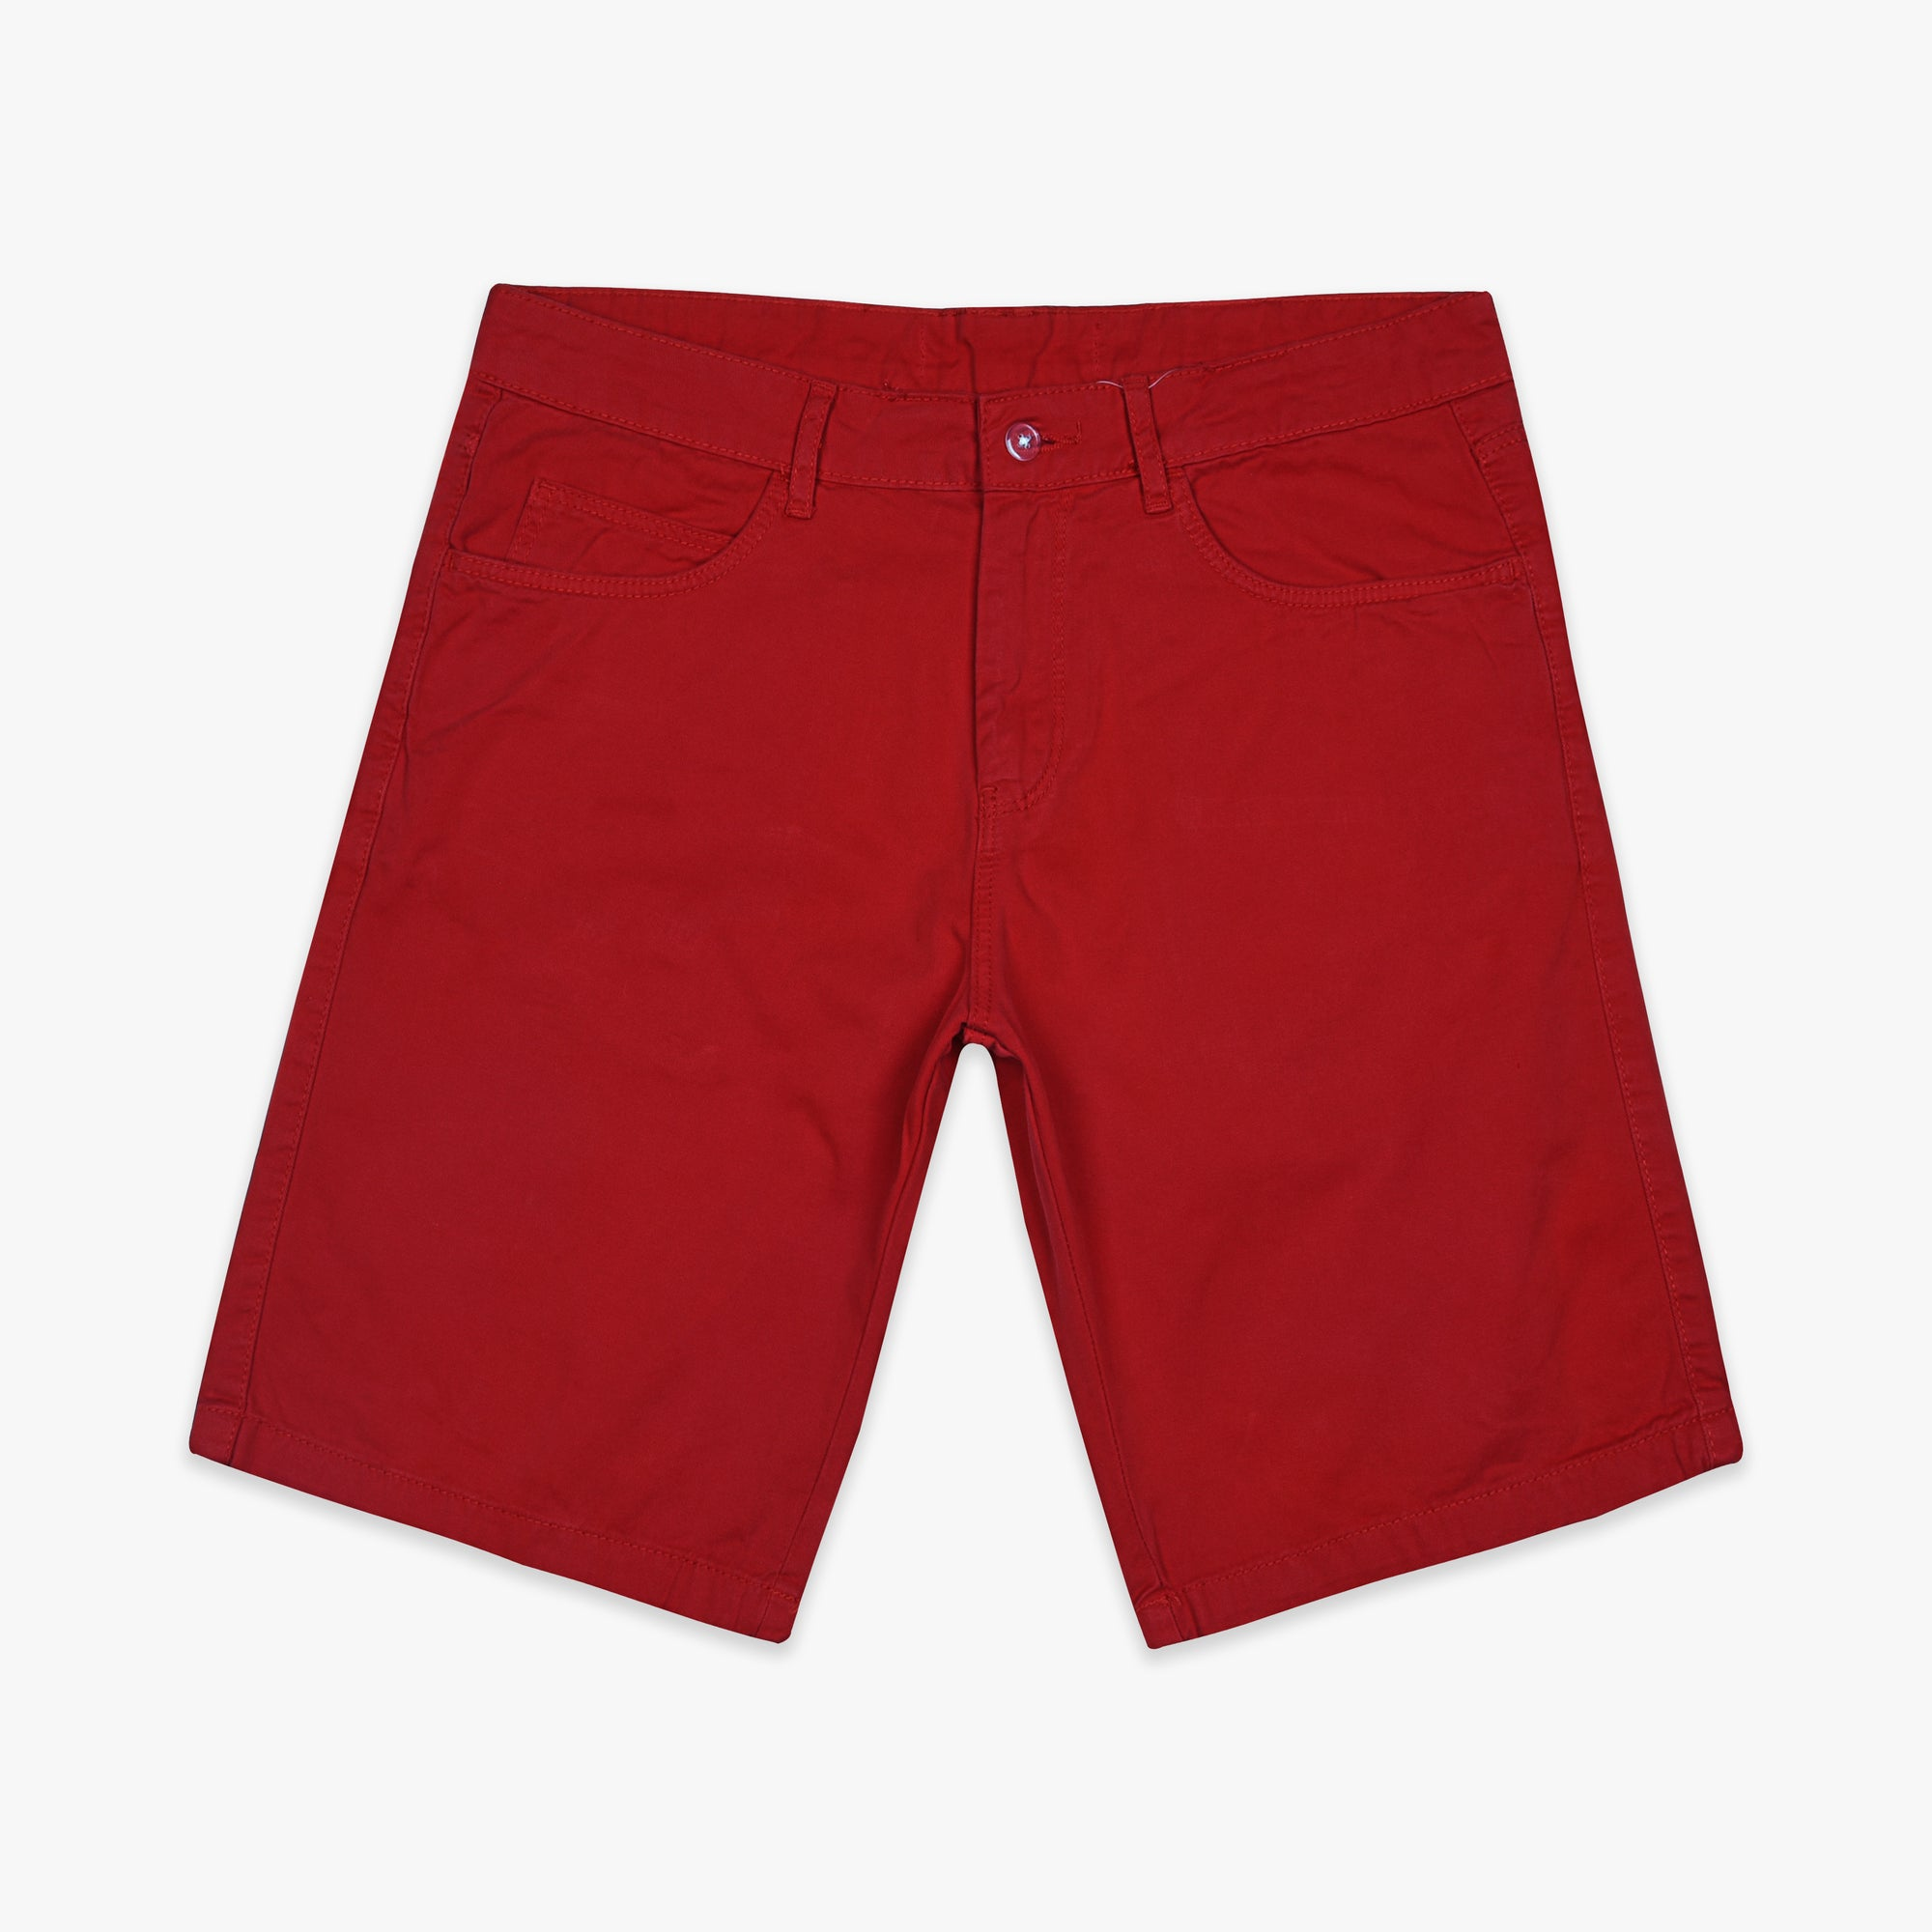 RAISIN CHINO SHORTS